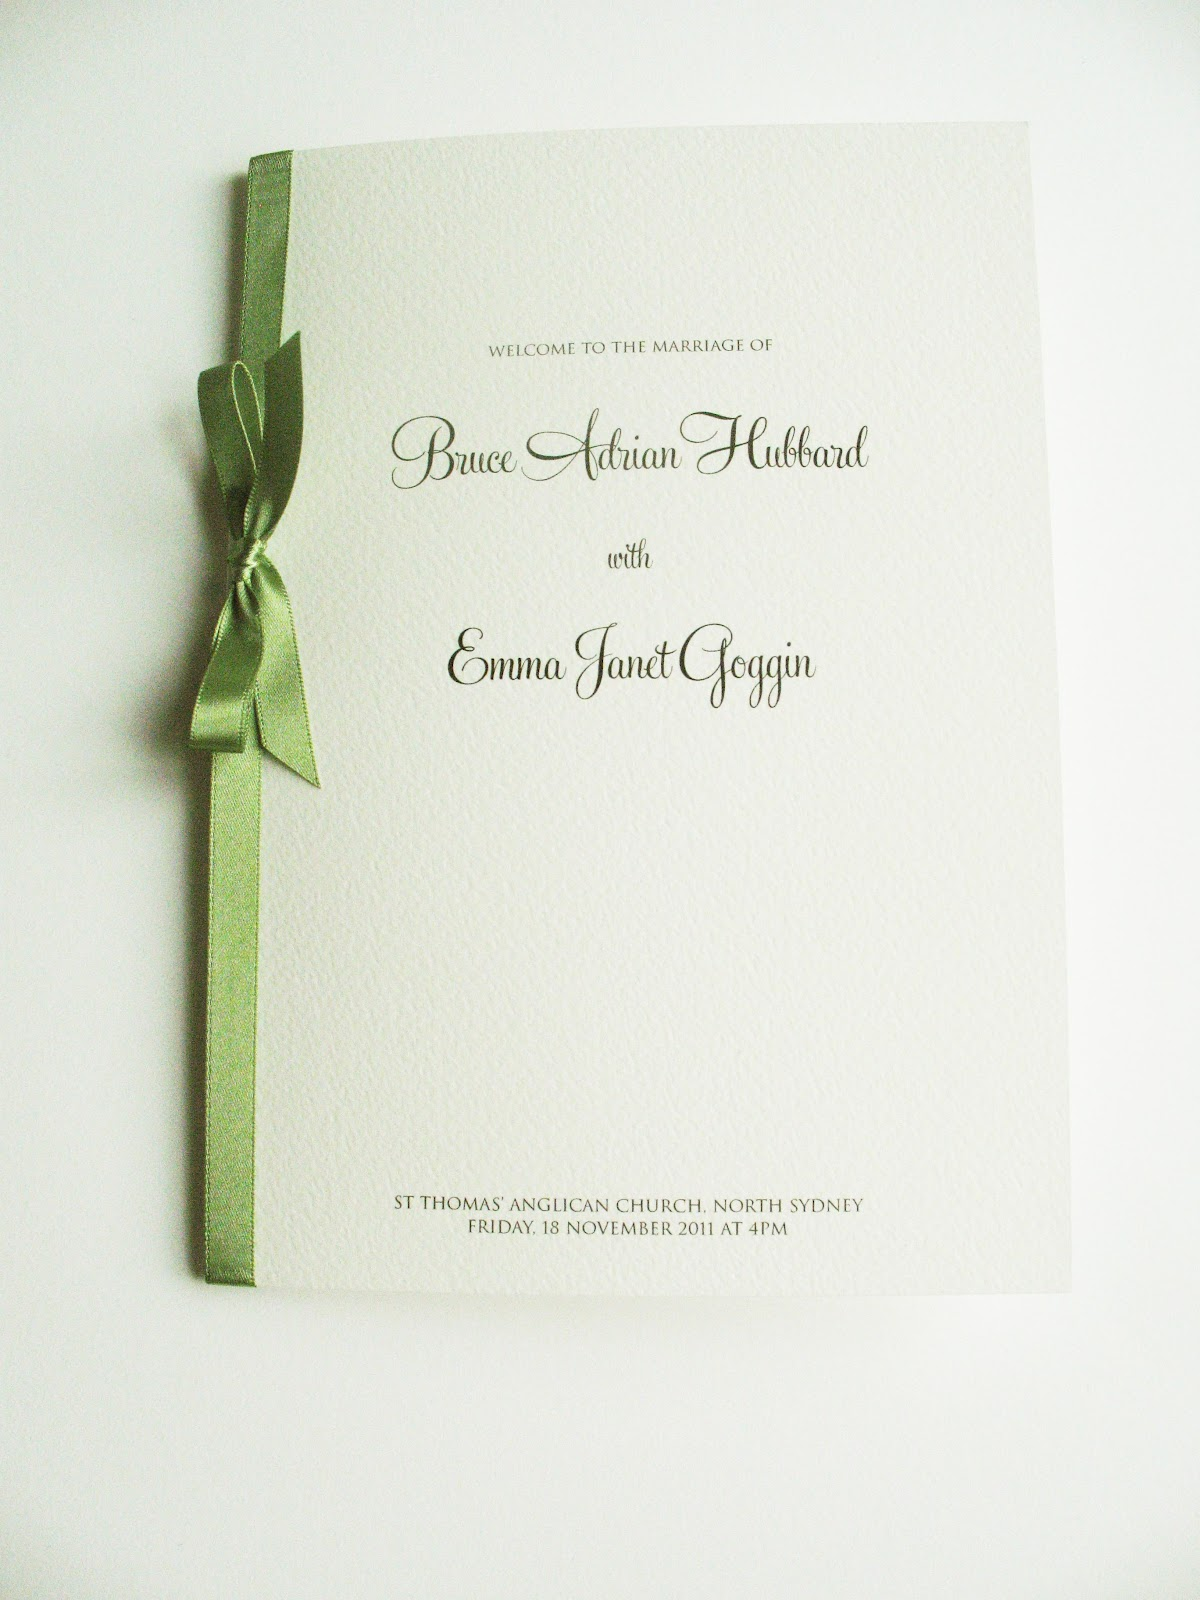 Inspiration for weddings, invitations and stationery: June 2012